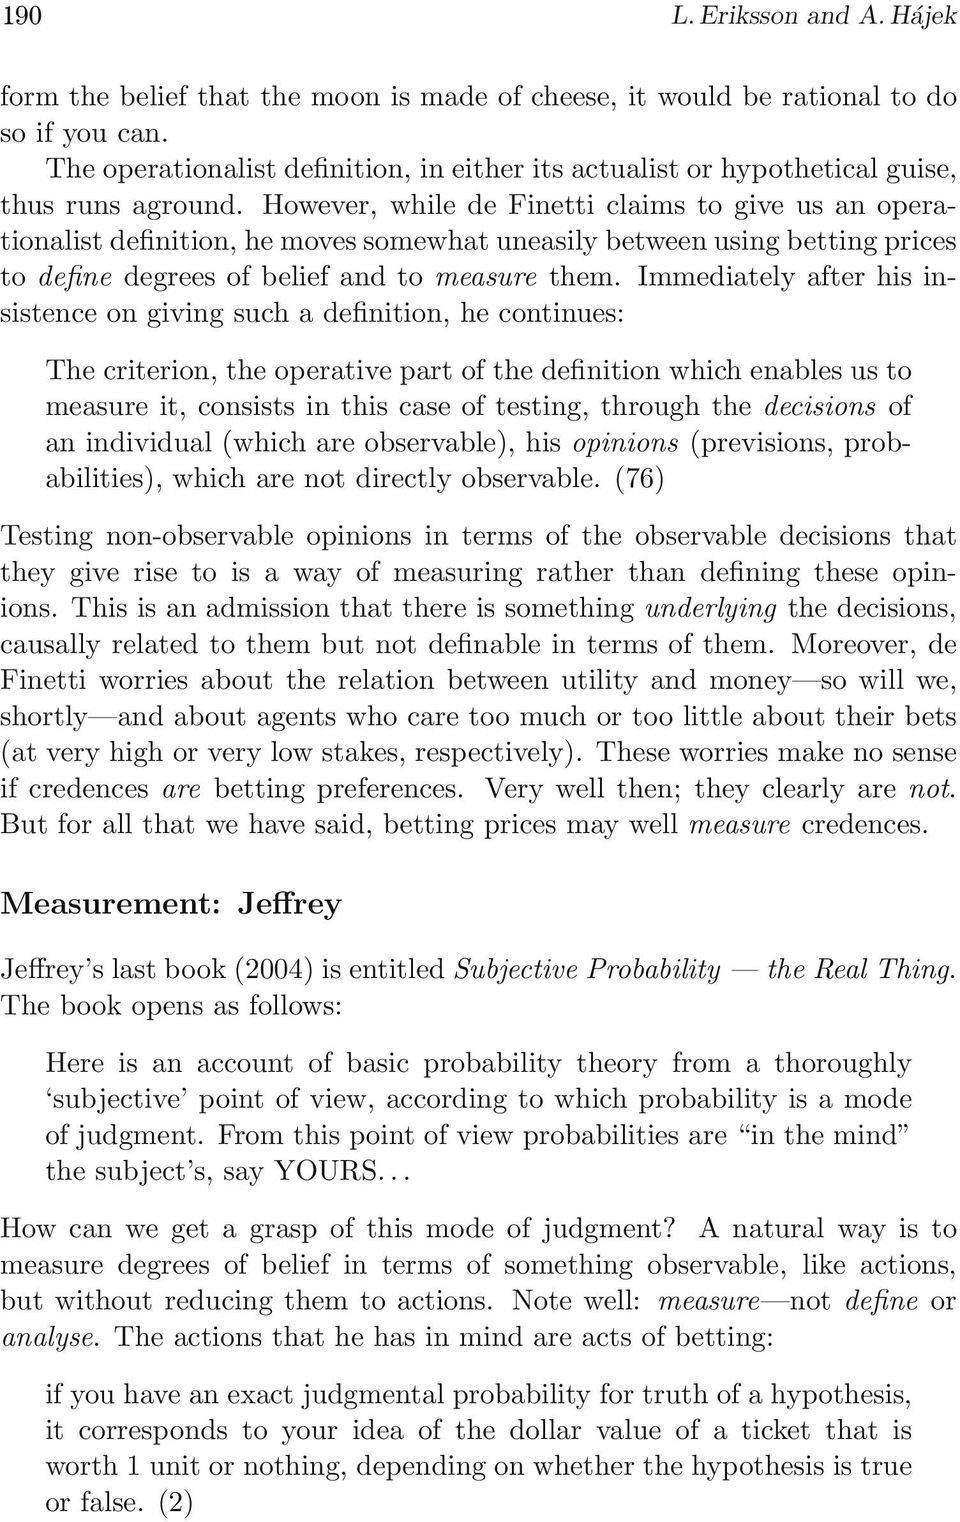 However, while de Finetti claims to give us an operationalist definition, he moves somewhat uneasily between using betting prices to define degrees of belief and to measure them.